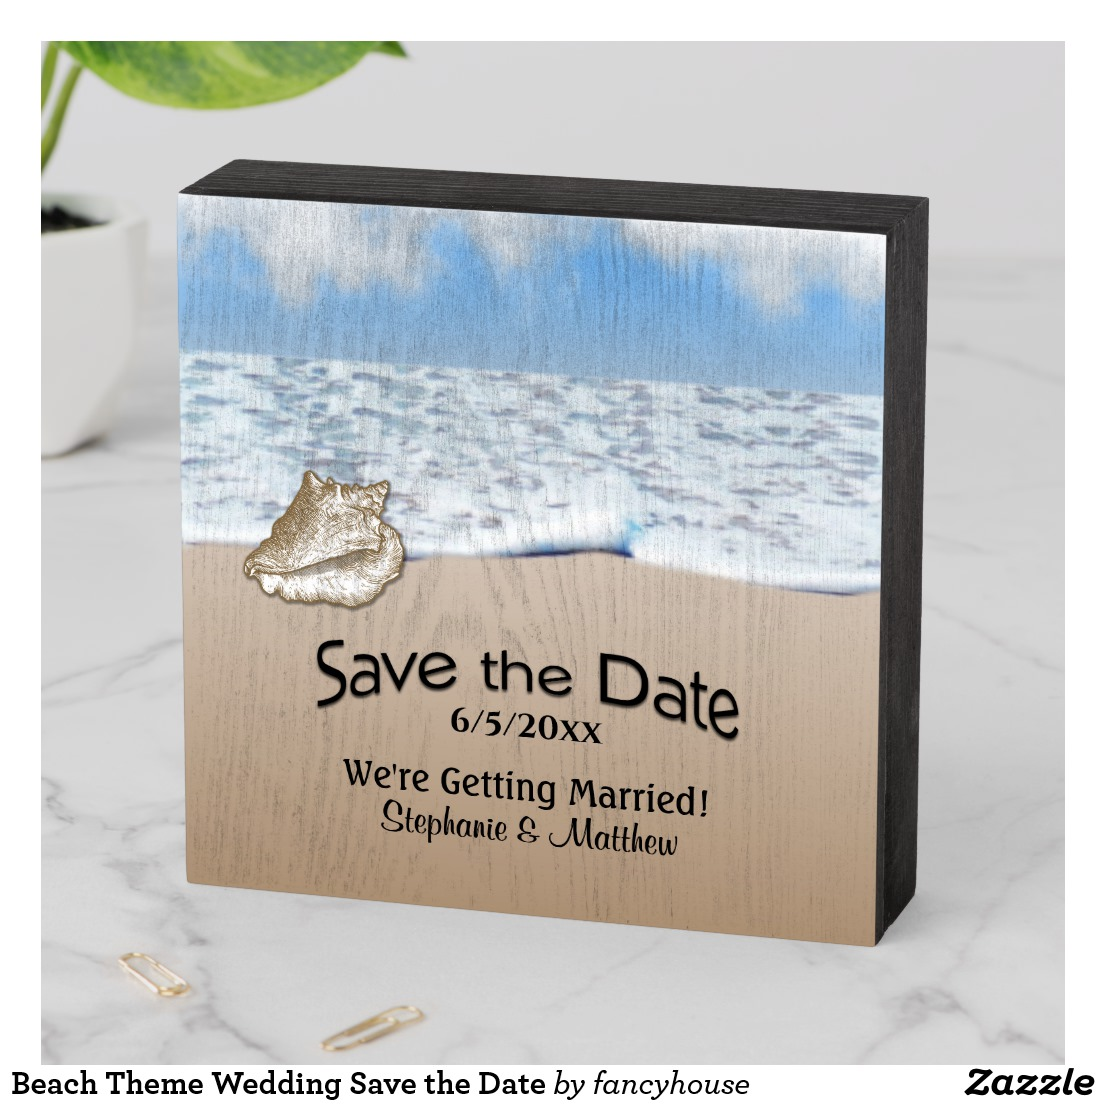 Beach Theme Wedding Save the Date Wooden Box Sign